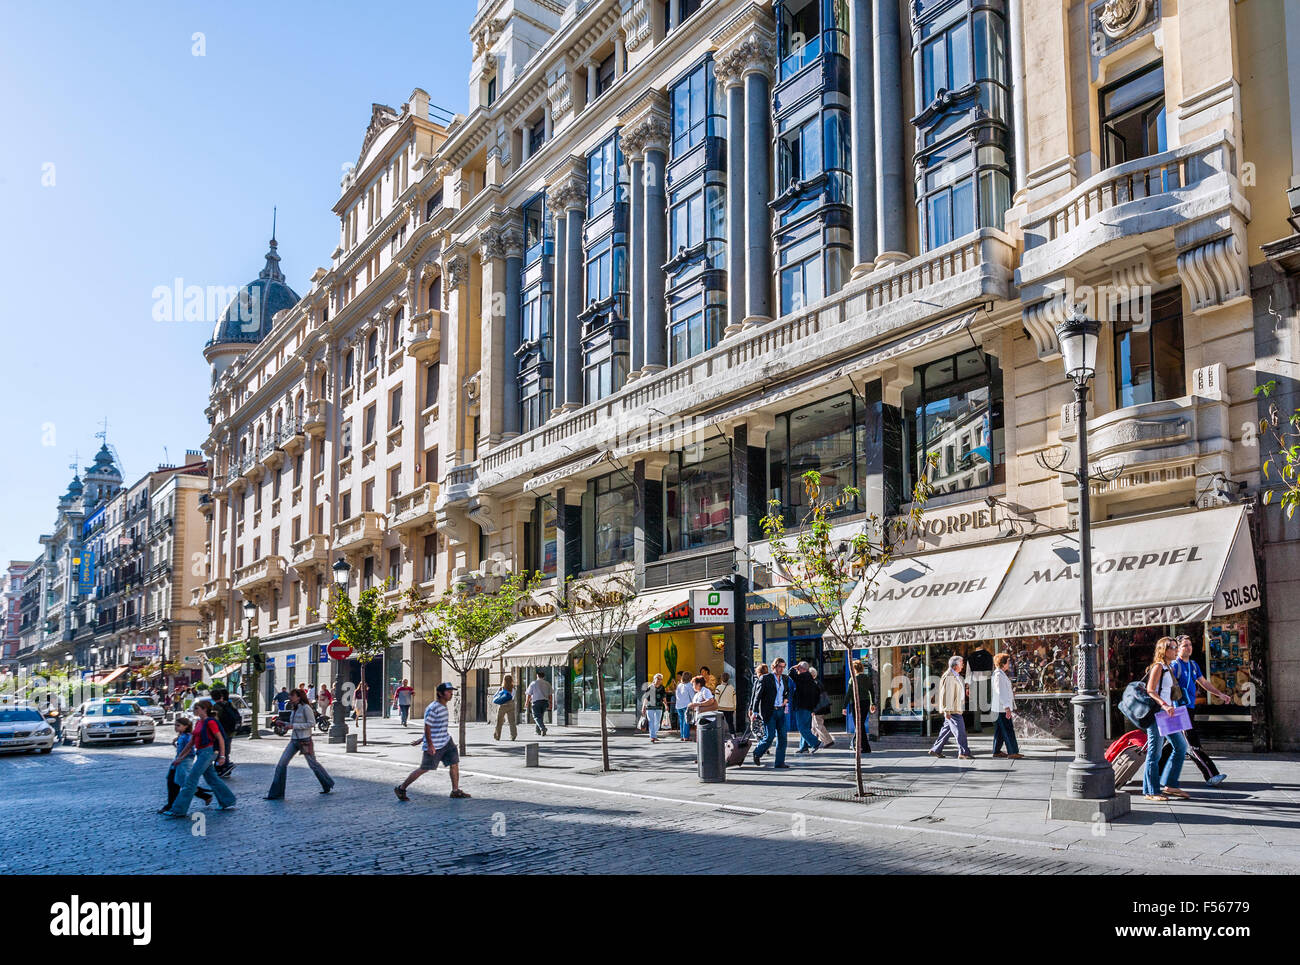 Spain, Madrid, Centro, Calle Mayor, popular and prestigious thoroughfare linking the Royal Palace and Puerta del - Stock Image